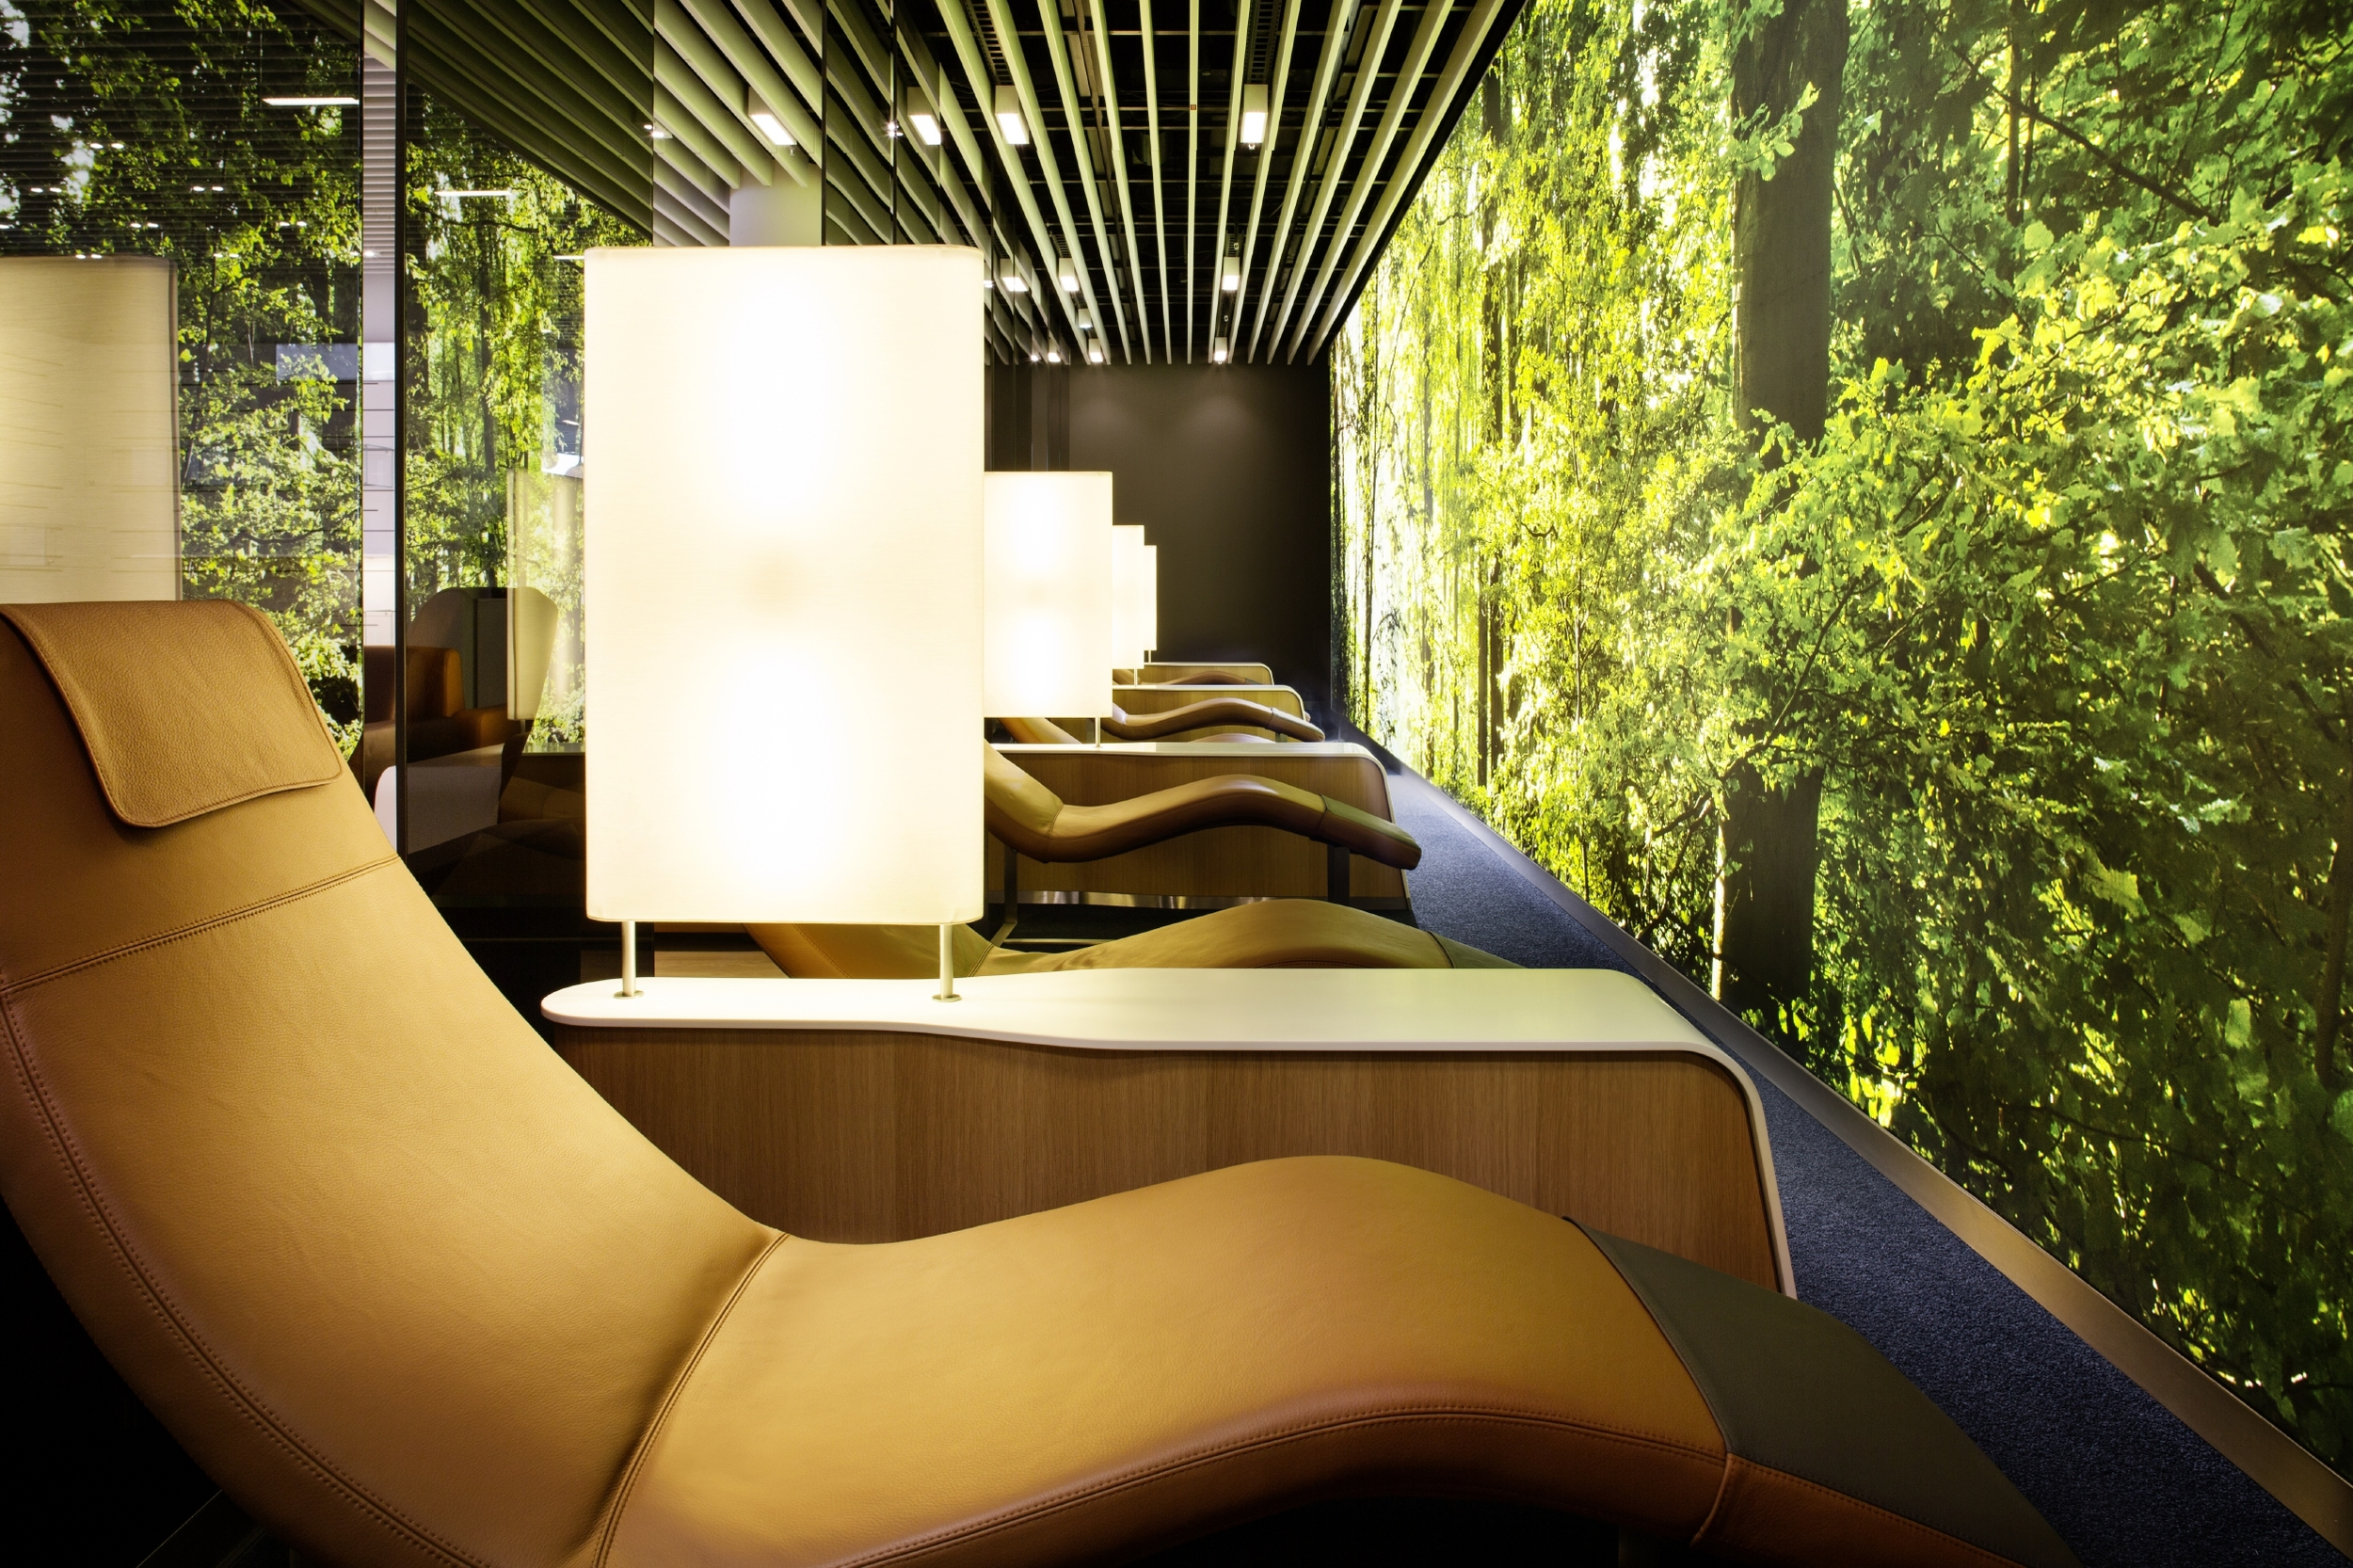 Lounge Lust - the world's most luxurious airport lounges.